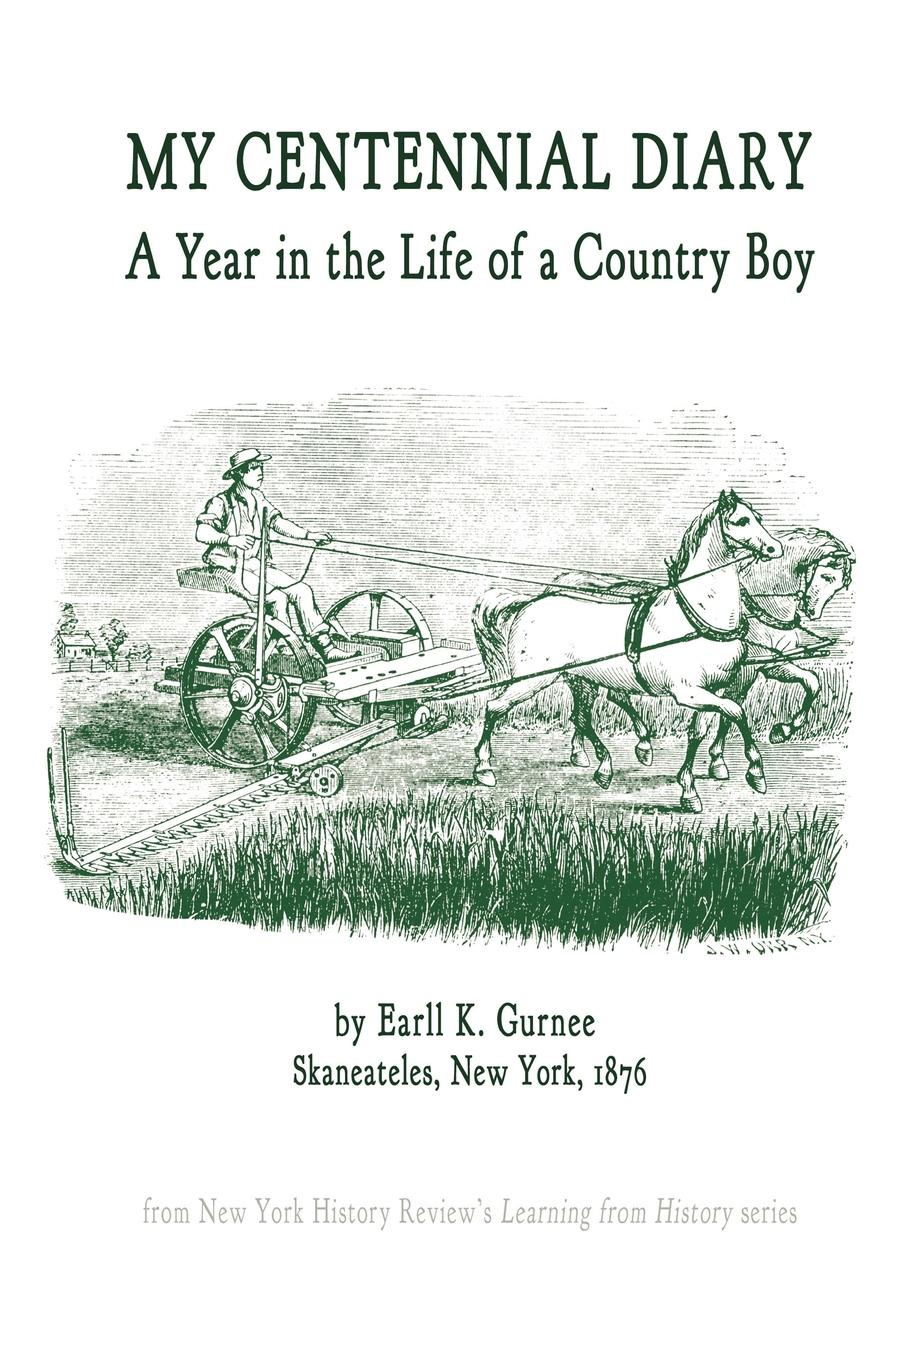 Earll K. Gurnee My Centennial Diary - A Year in the Life of a Country Boy history of my life